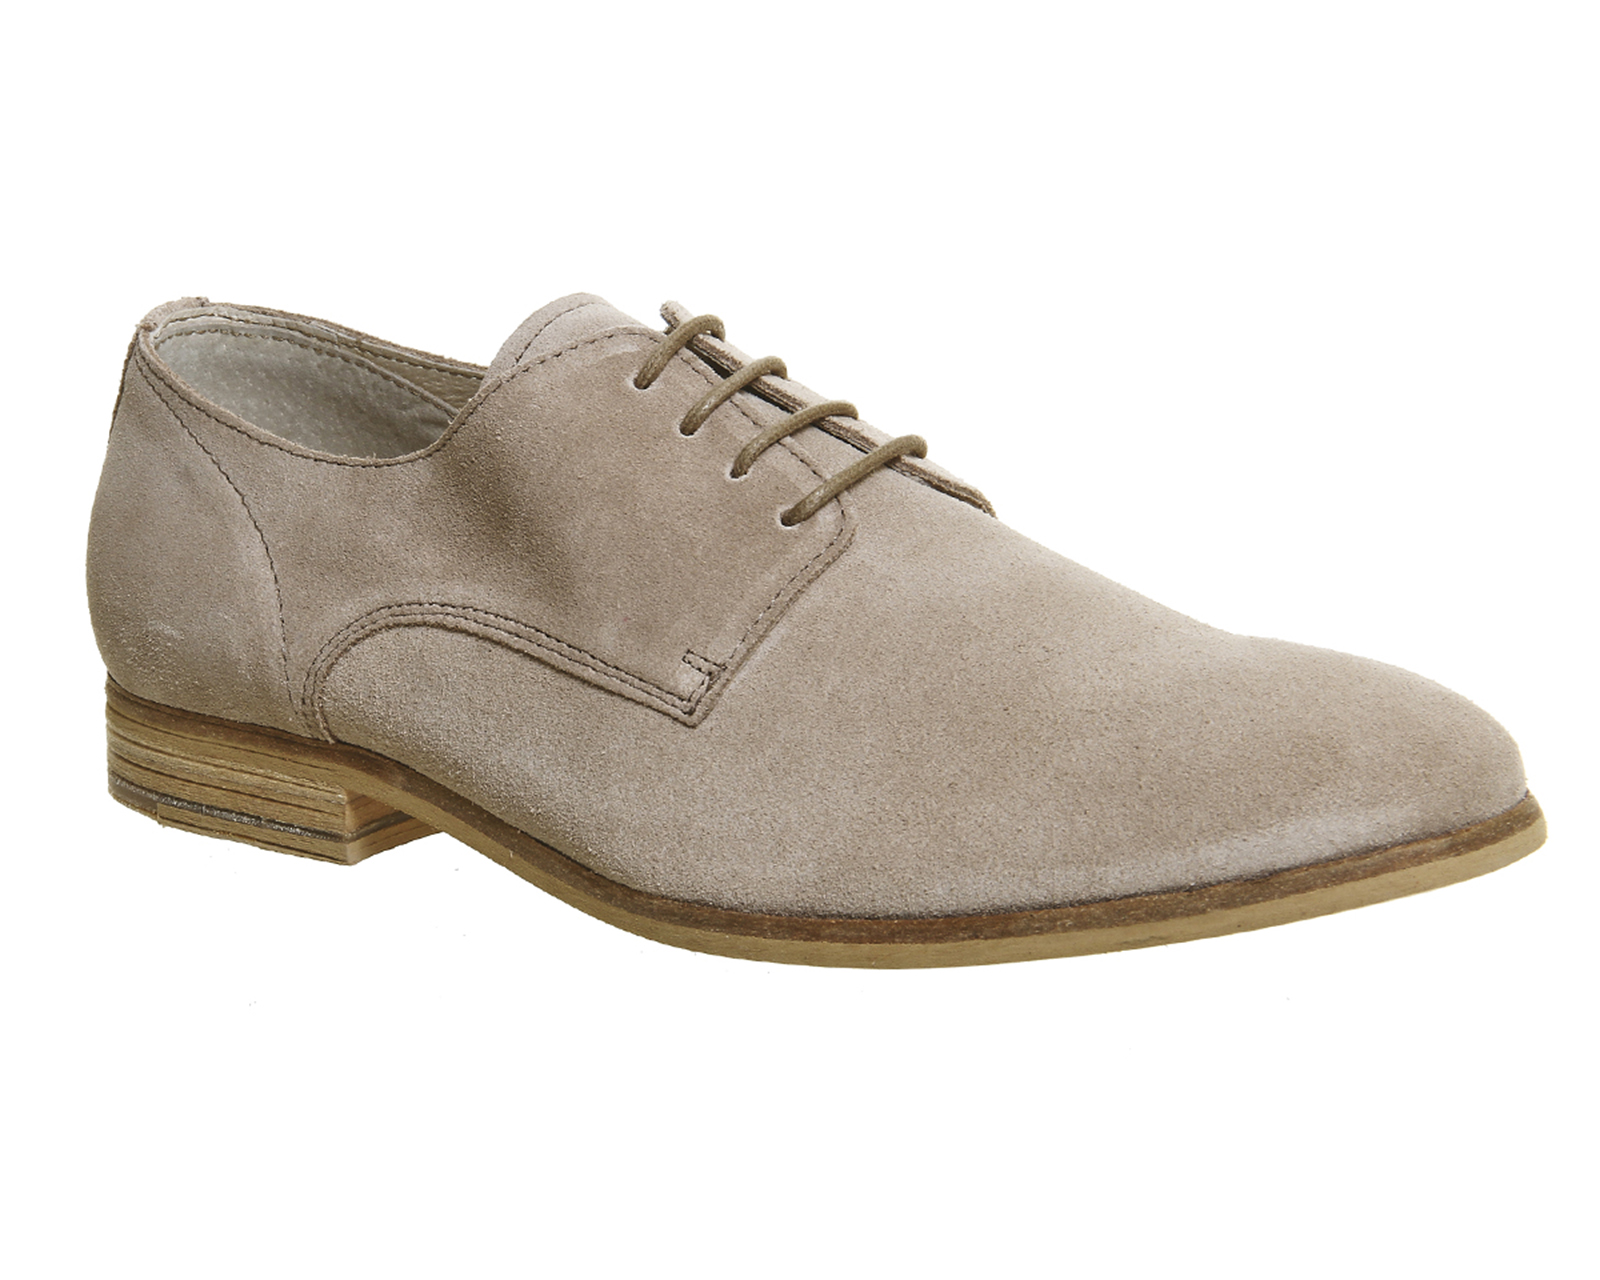 Mens Ask the Missus Beige Suede Lace up Casual shoes Size Ex-Display